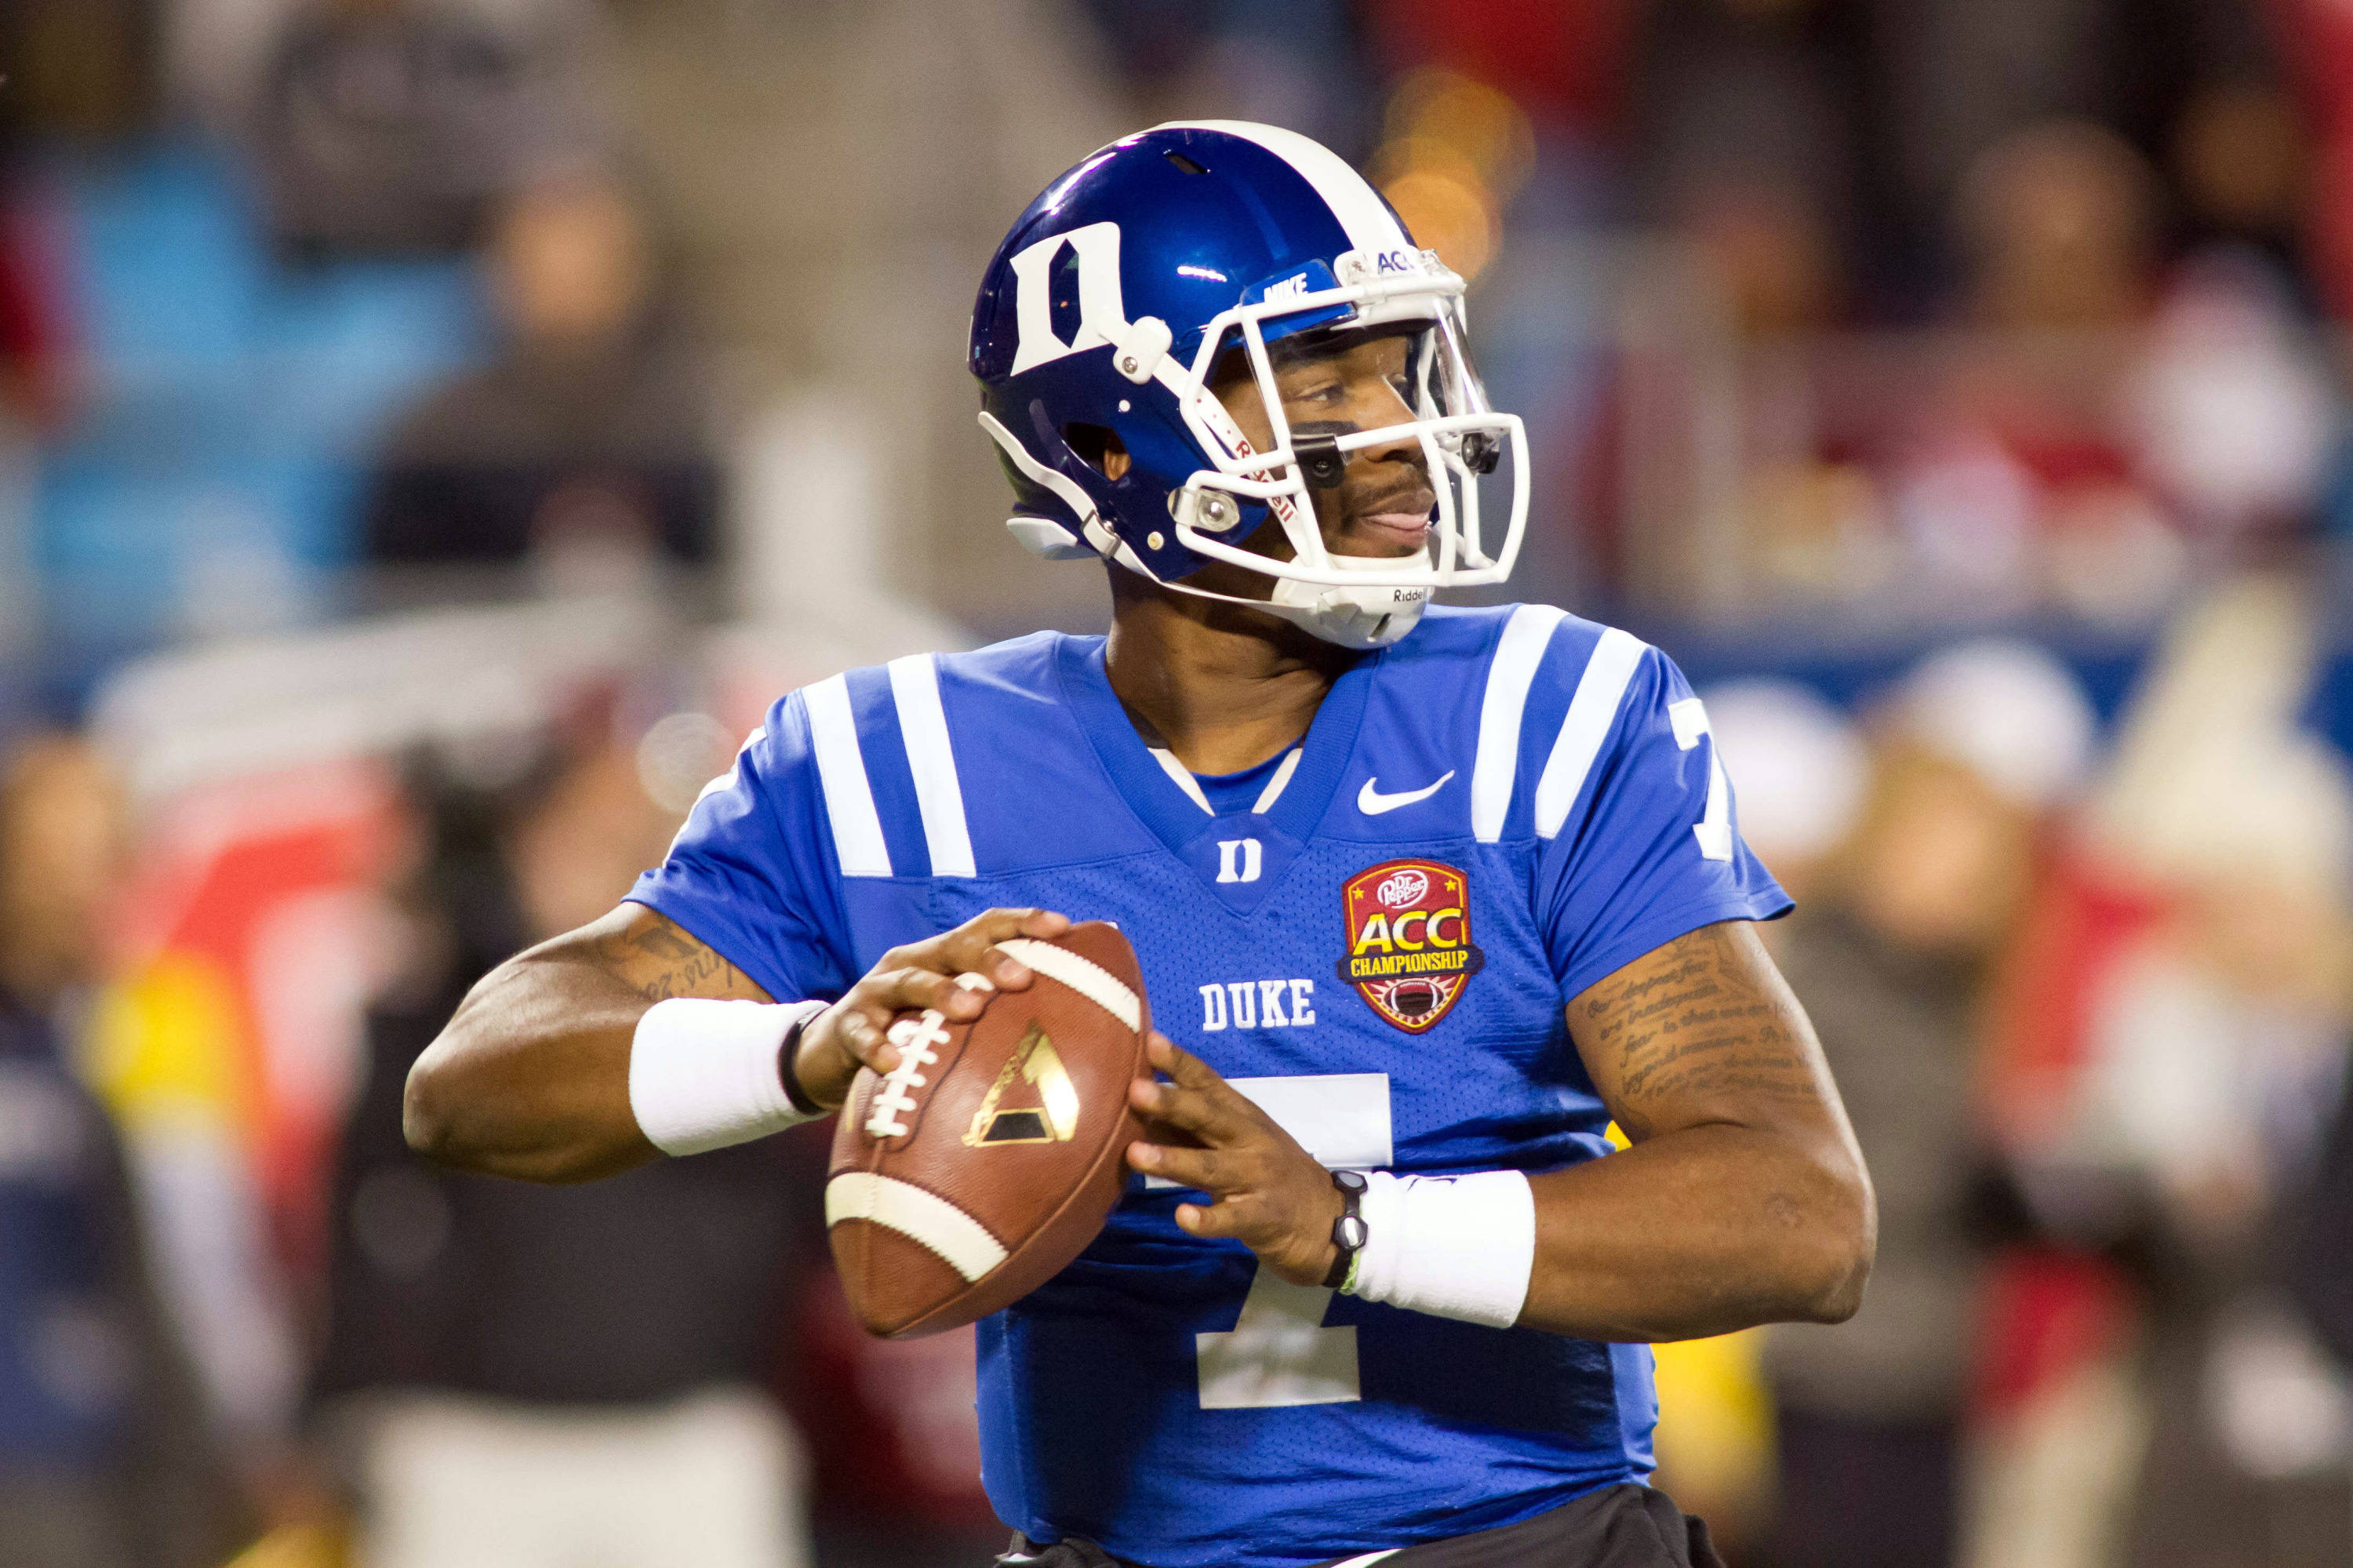 Dec 7, 2013; Charlotte, NC, USA; Duke Blue Devils quarterback Anthony Boone (7) looks to pass the ball during the second quarter against the Florida State Seminoles at Bank of America Stadium. Mandatory Credit: Jeremy Brevard-USA TODAY Sports